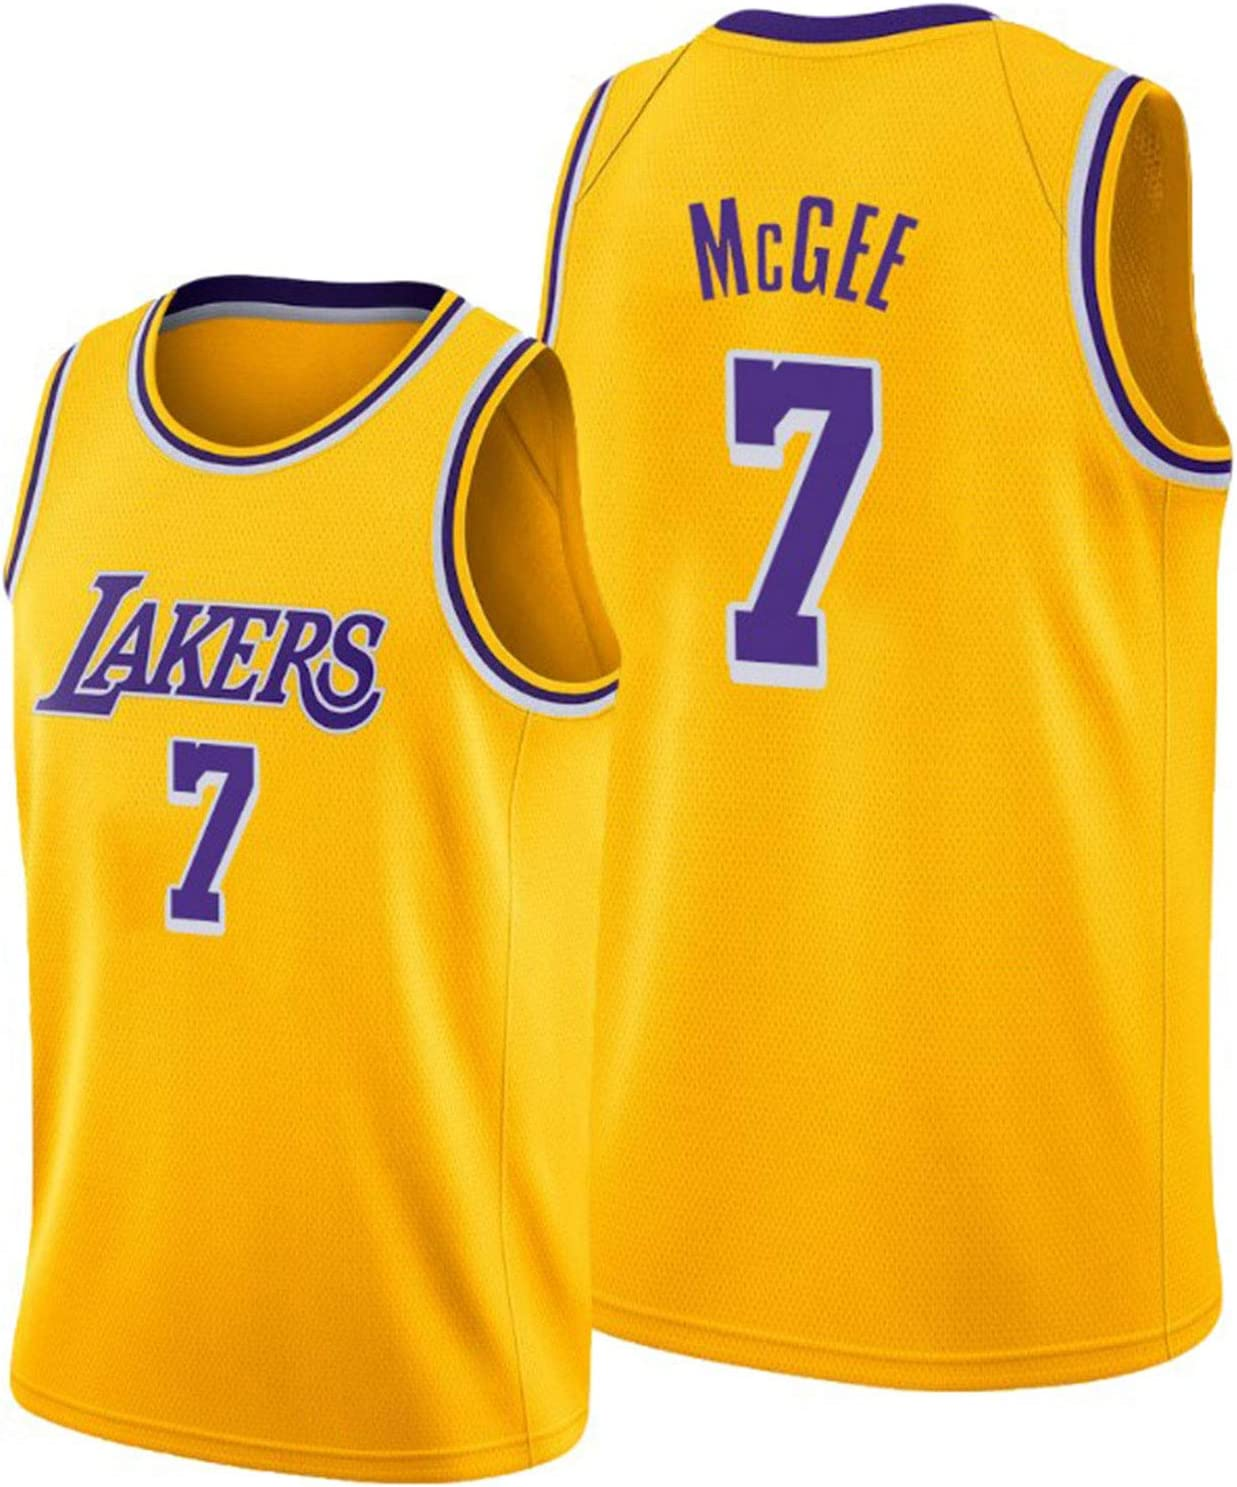 Hot-Pressed Version Polyester Breathable Basketball Performance Vest TGBYHN 2020 Finals Laker Men Basketball Jersey McGee 7# Real Jersey S-XXL